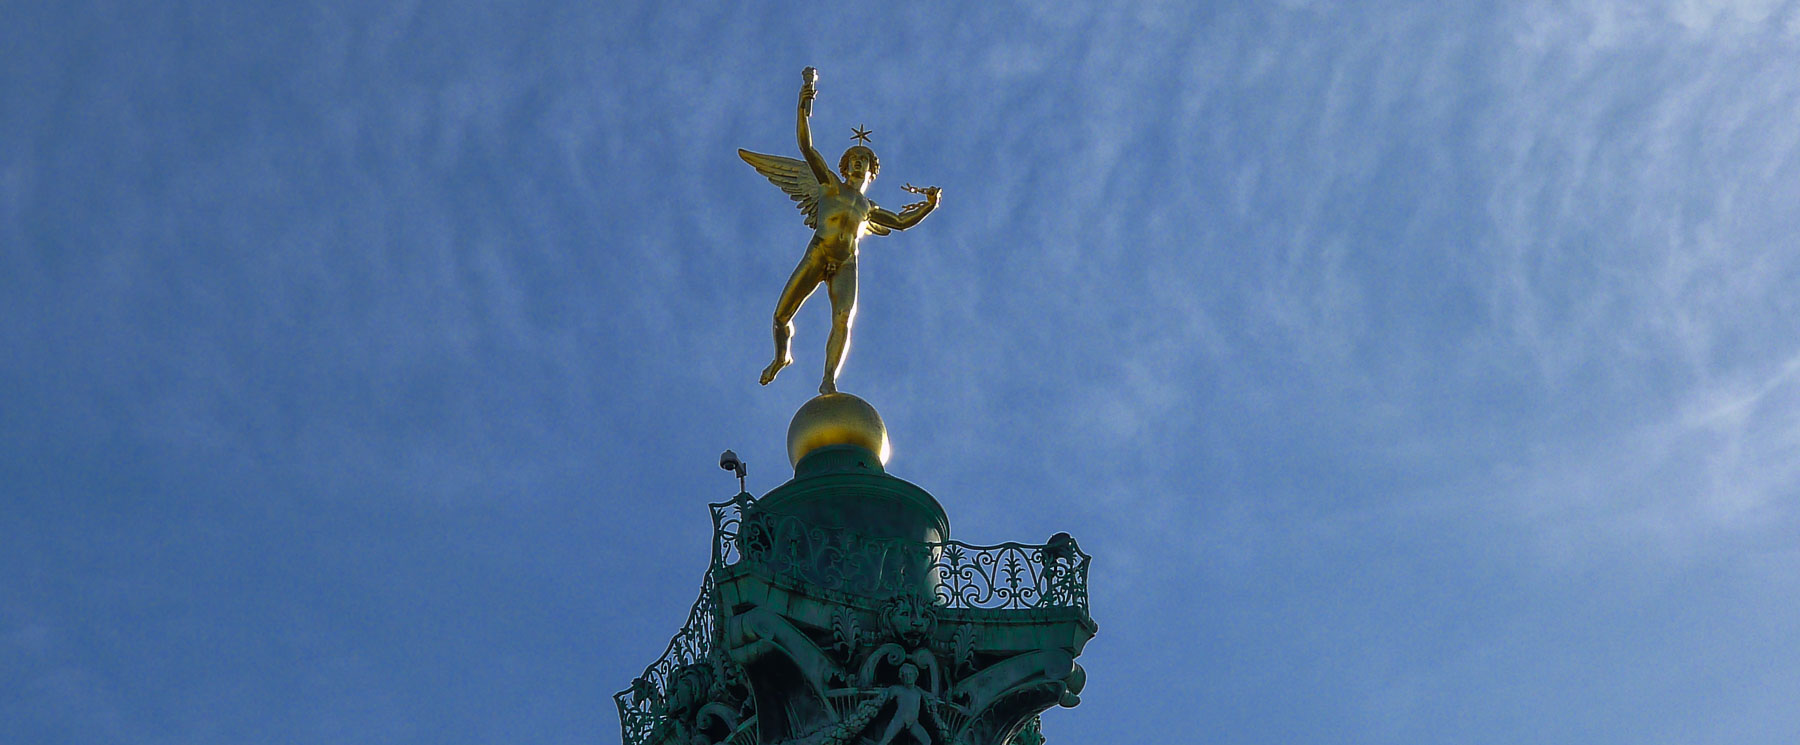 Spirit of Freedom on top of column in Place de la Bastille, one of the thriving Paris arrondissements.